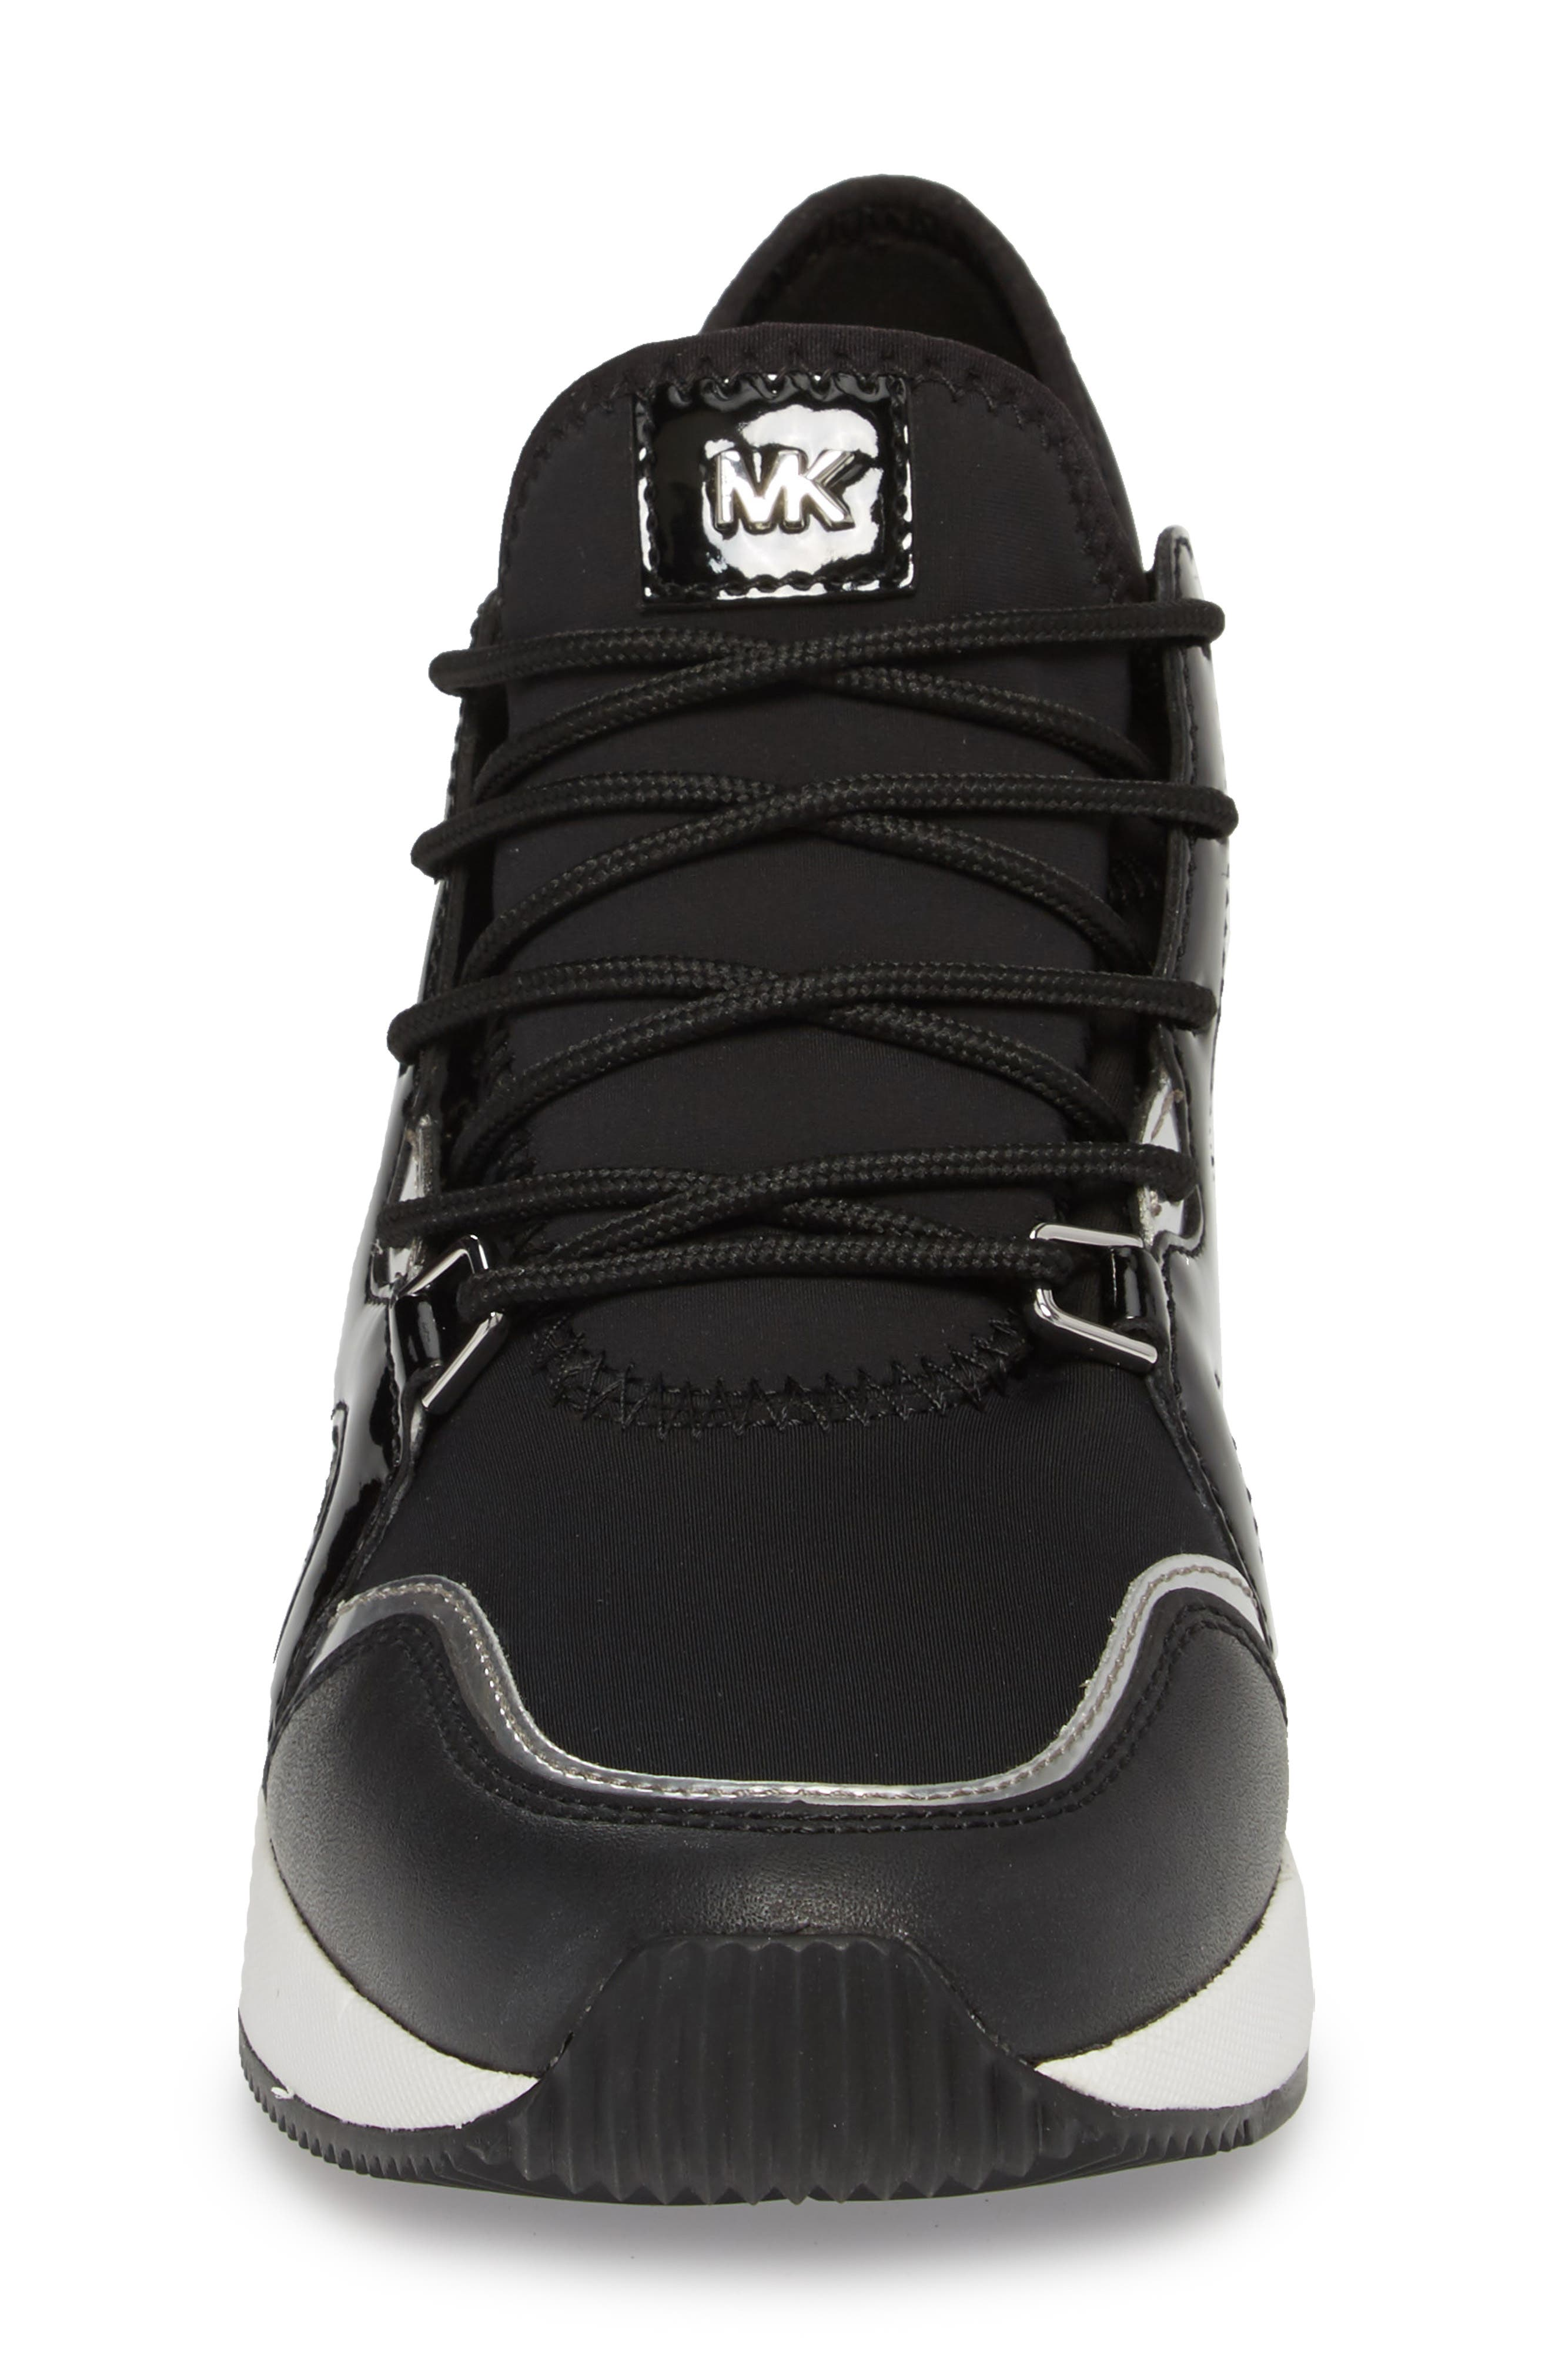 Scout Wedge Sneaker,                             Alternate thumbnail 4, color,                             002